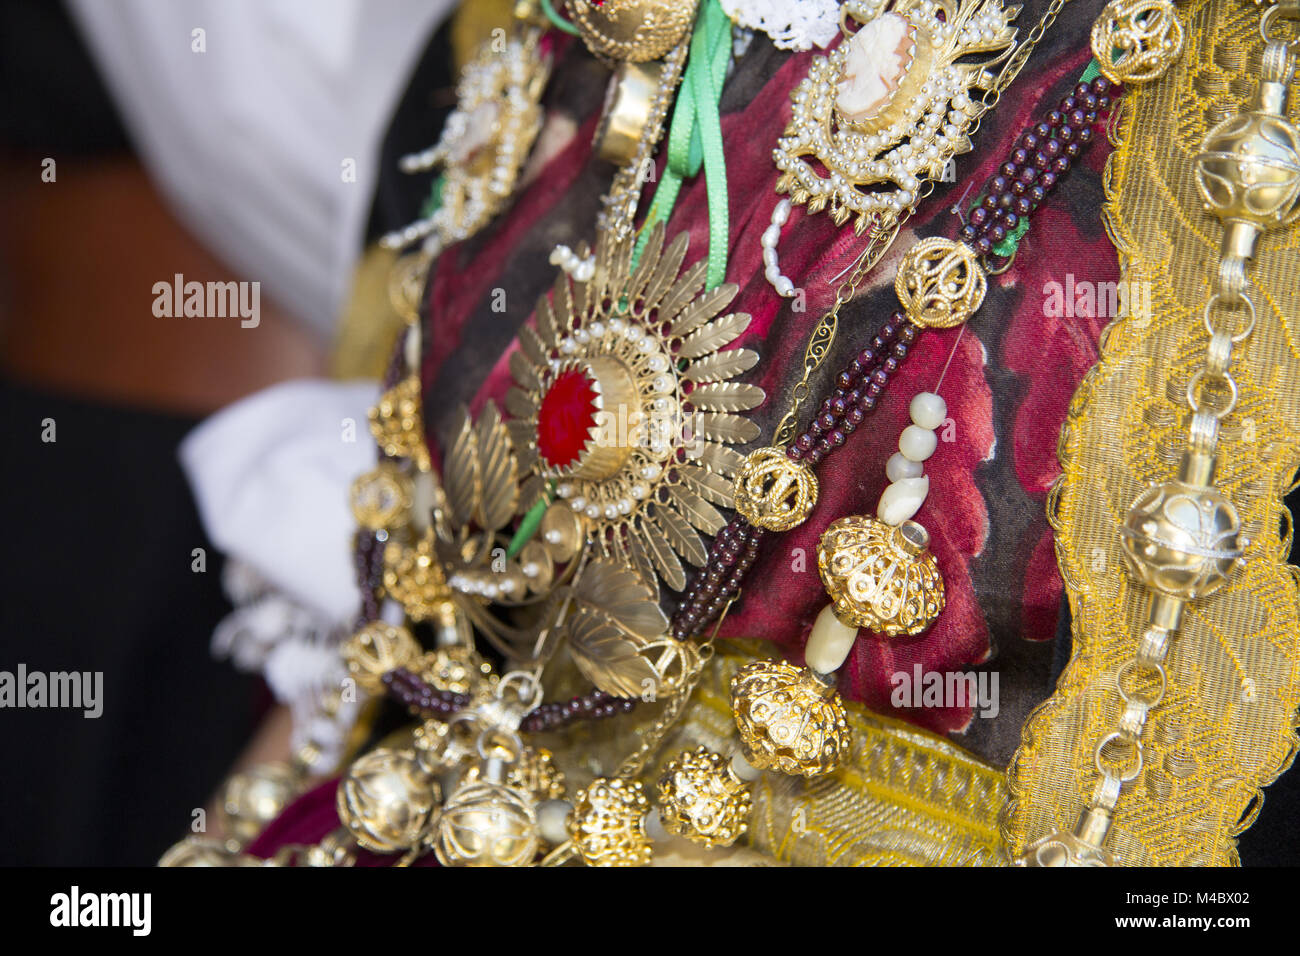 Sardinian jewels - Stock Image